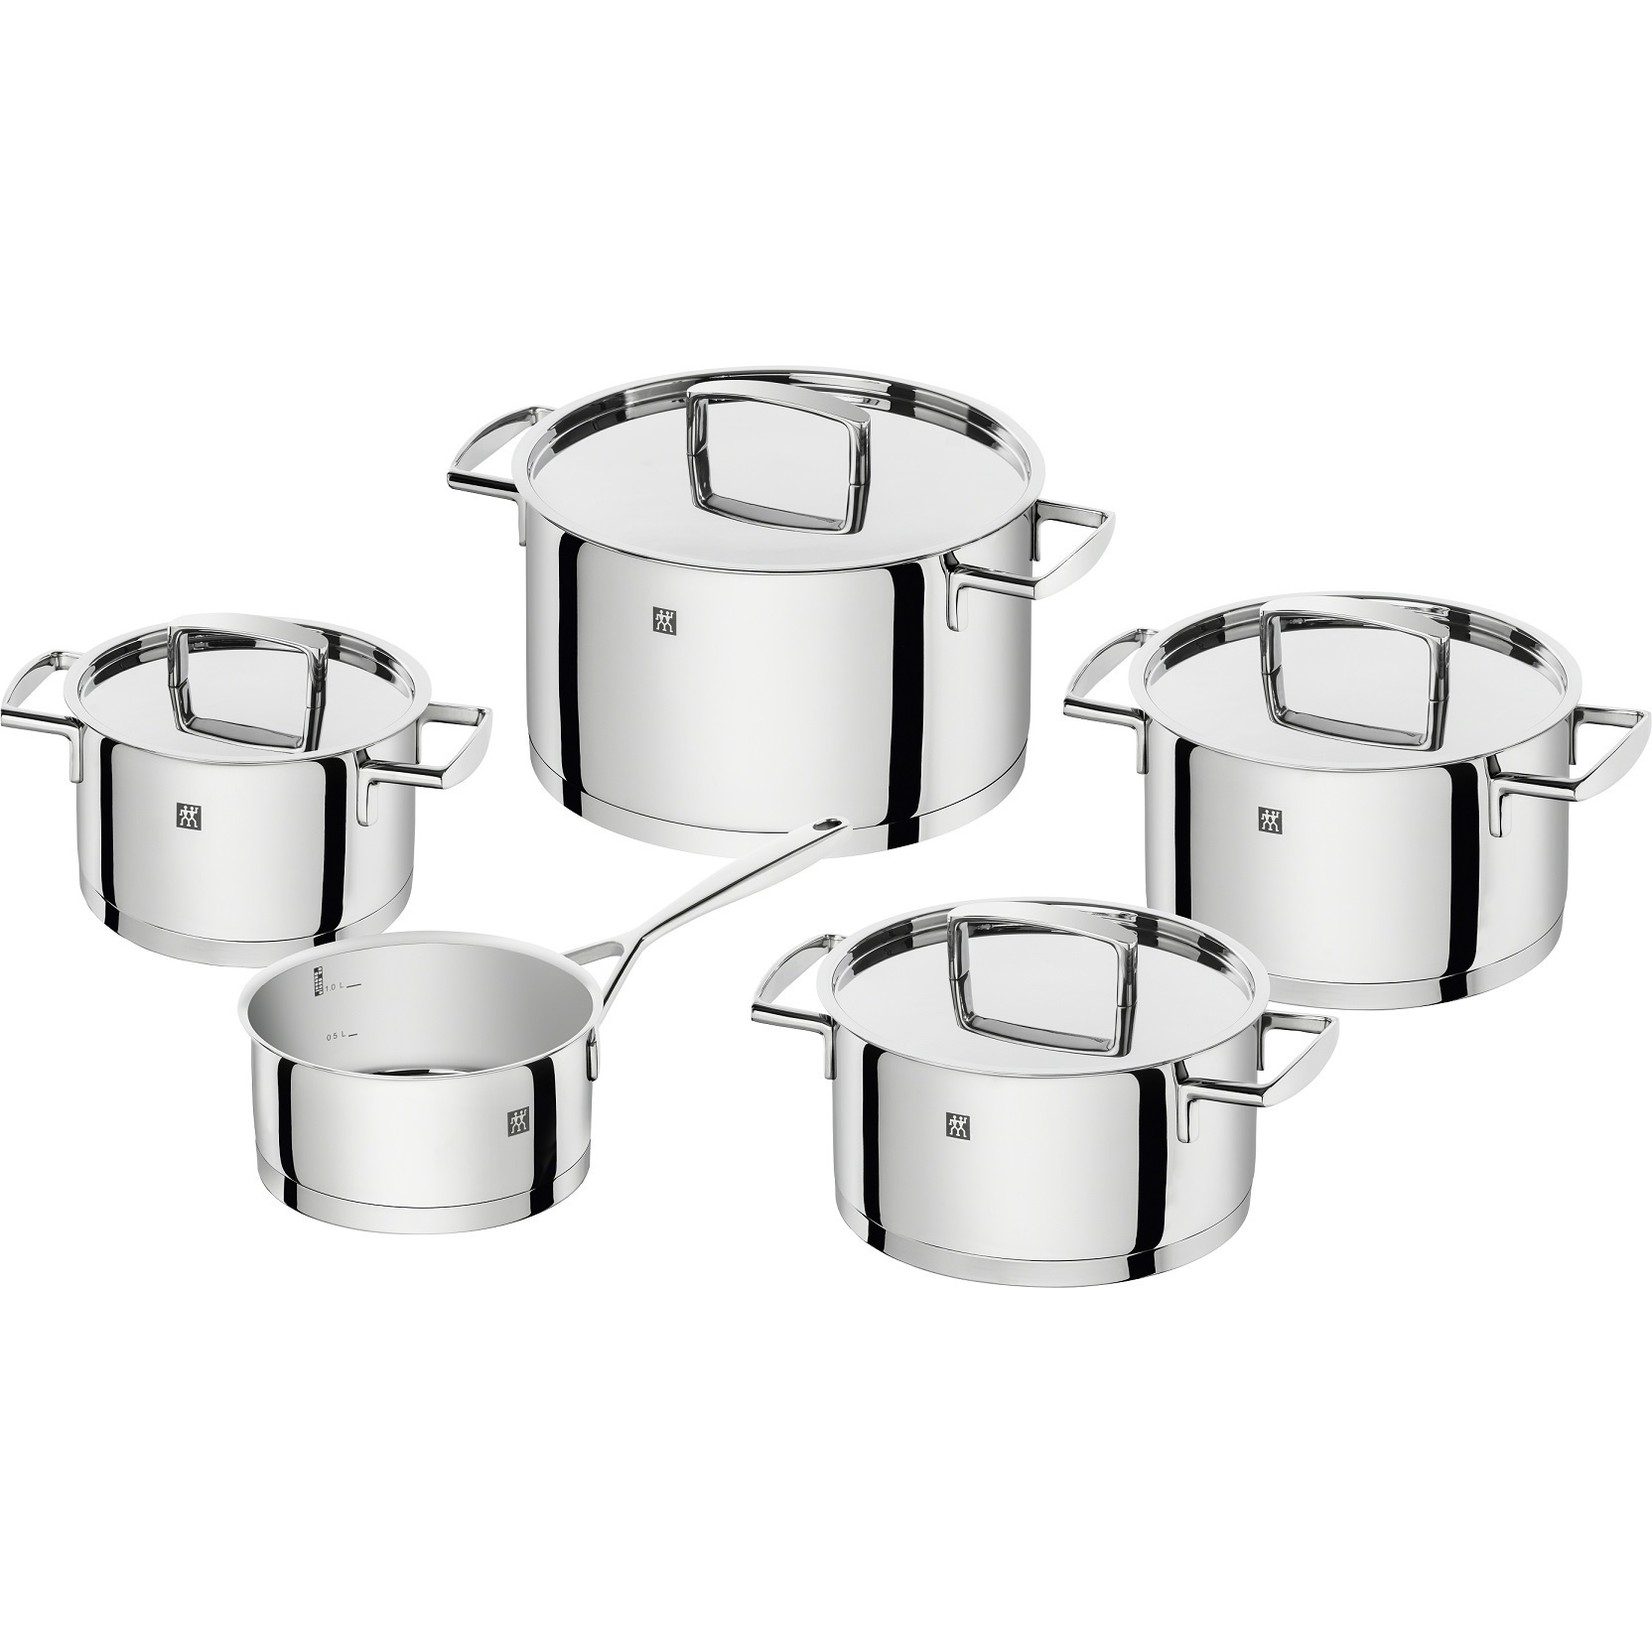 Zwilling Zwilling Passion pannenset 5-delig